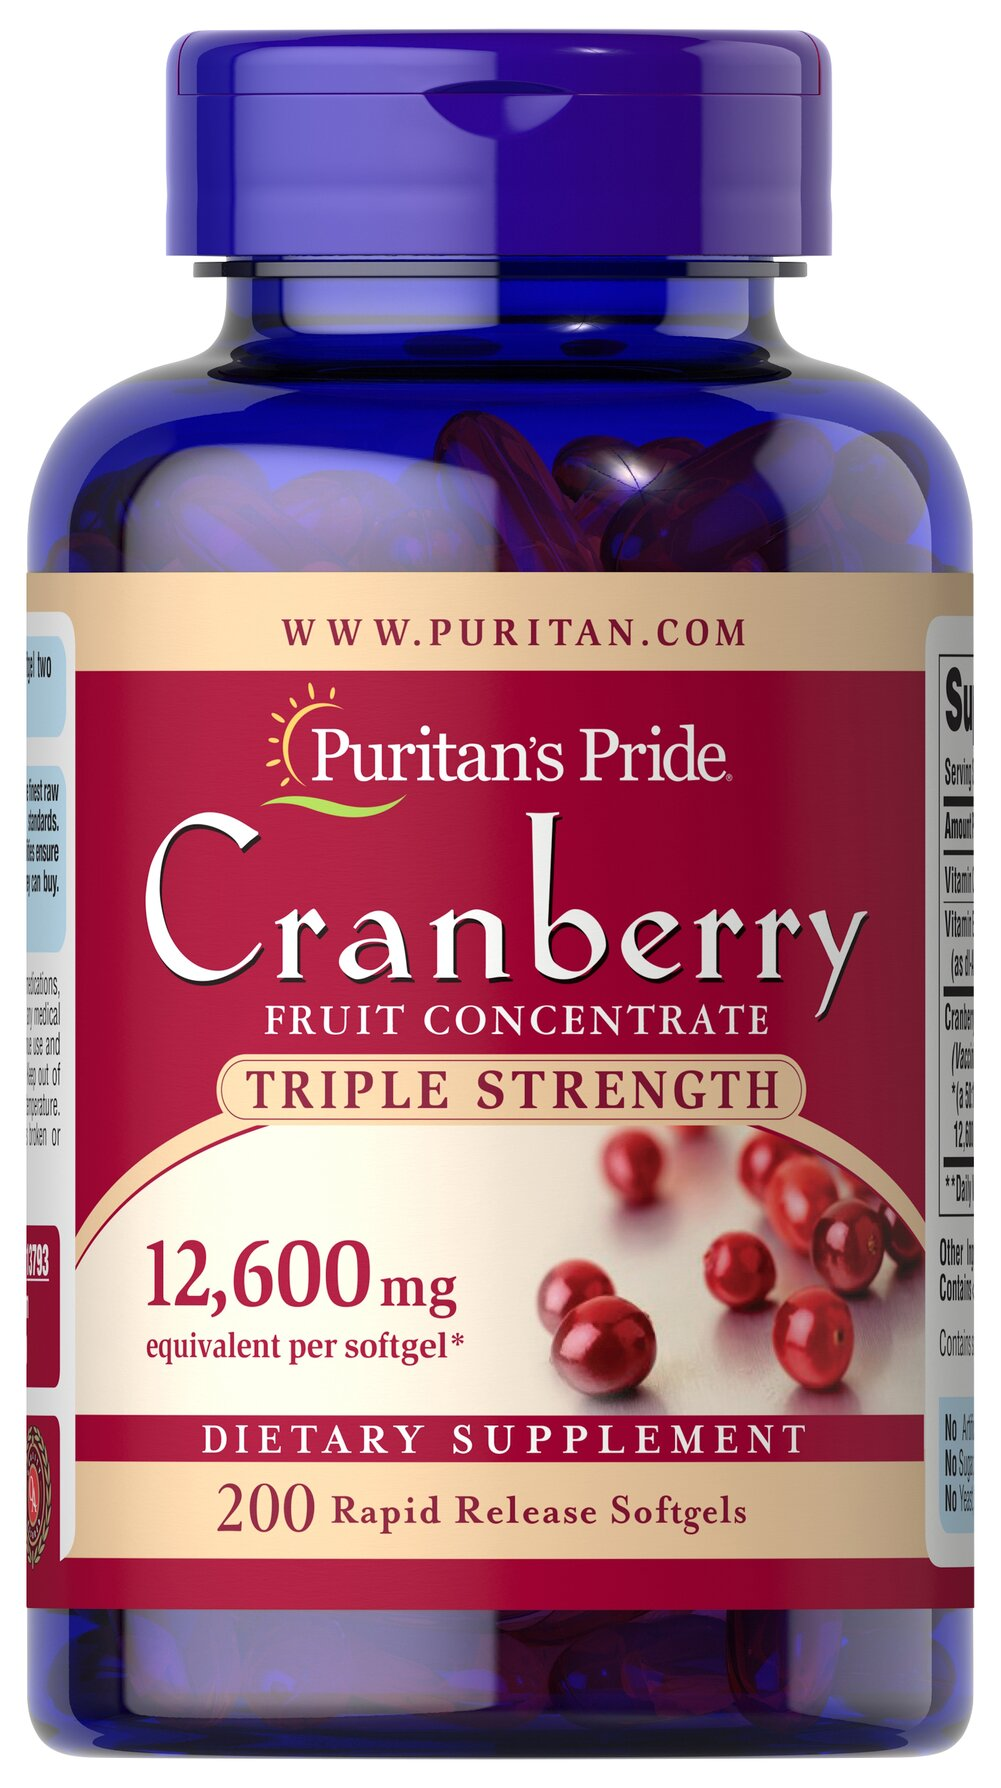 Triple Strength Cranberry Fruit Concentrate 1200 mg <p>Supports Urinary and Immune System Health**</p><p>Triple Strength Cranberry Concentrate contains 12,600 mg of cranberry concentrate per serving.</p><p>Cranberries contain the nutritional benefits of proanthocyanidins.** This product also contains Vitamin C, an antioxidant that plays a role in supporting immune function, plus Vitamin E.**</p> 200 Softgels 1200 mg $37.99